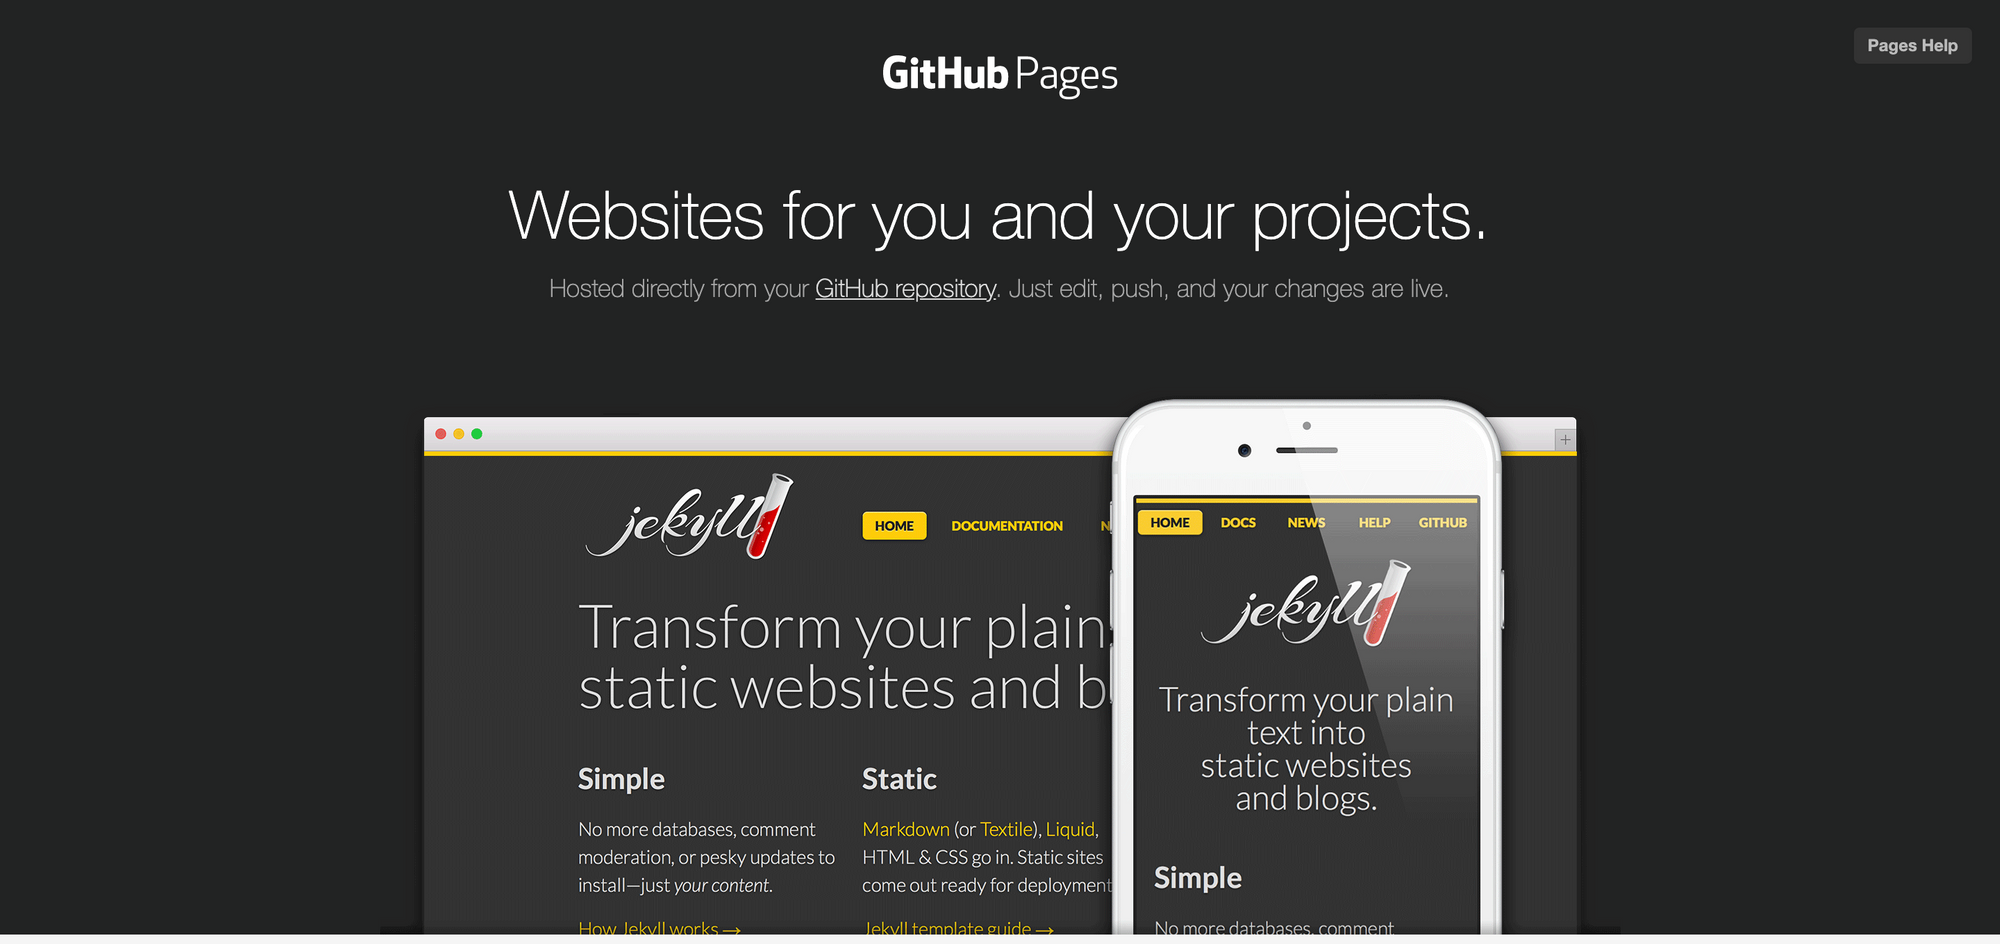 GitHub Pages Websites for you and your projects. Hosted directly from your GitHub repository. Just edit, push, and your changes are live.